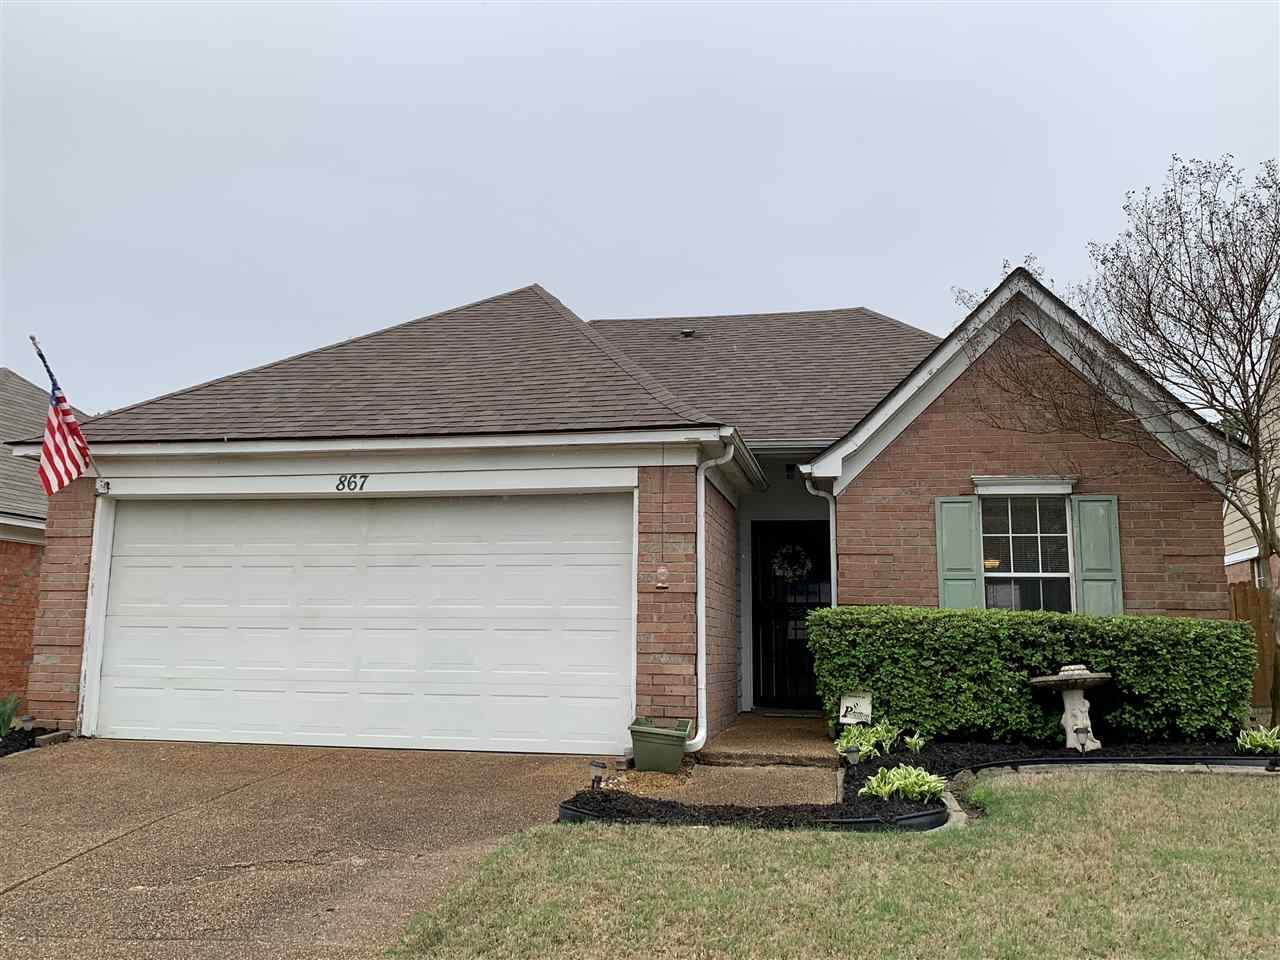 867 Timber Trace Dr - Photo 1